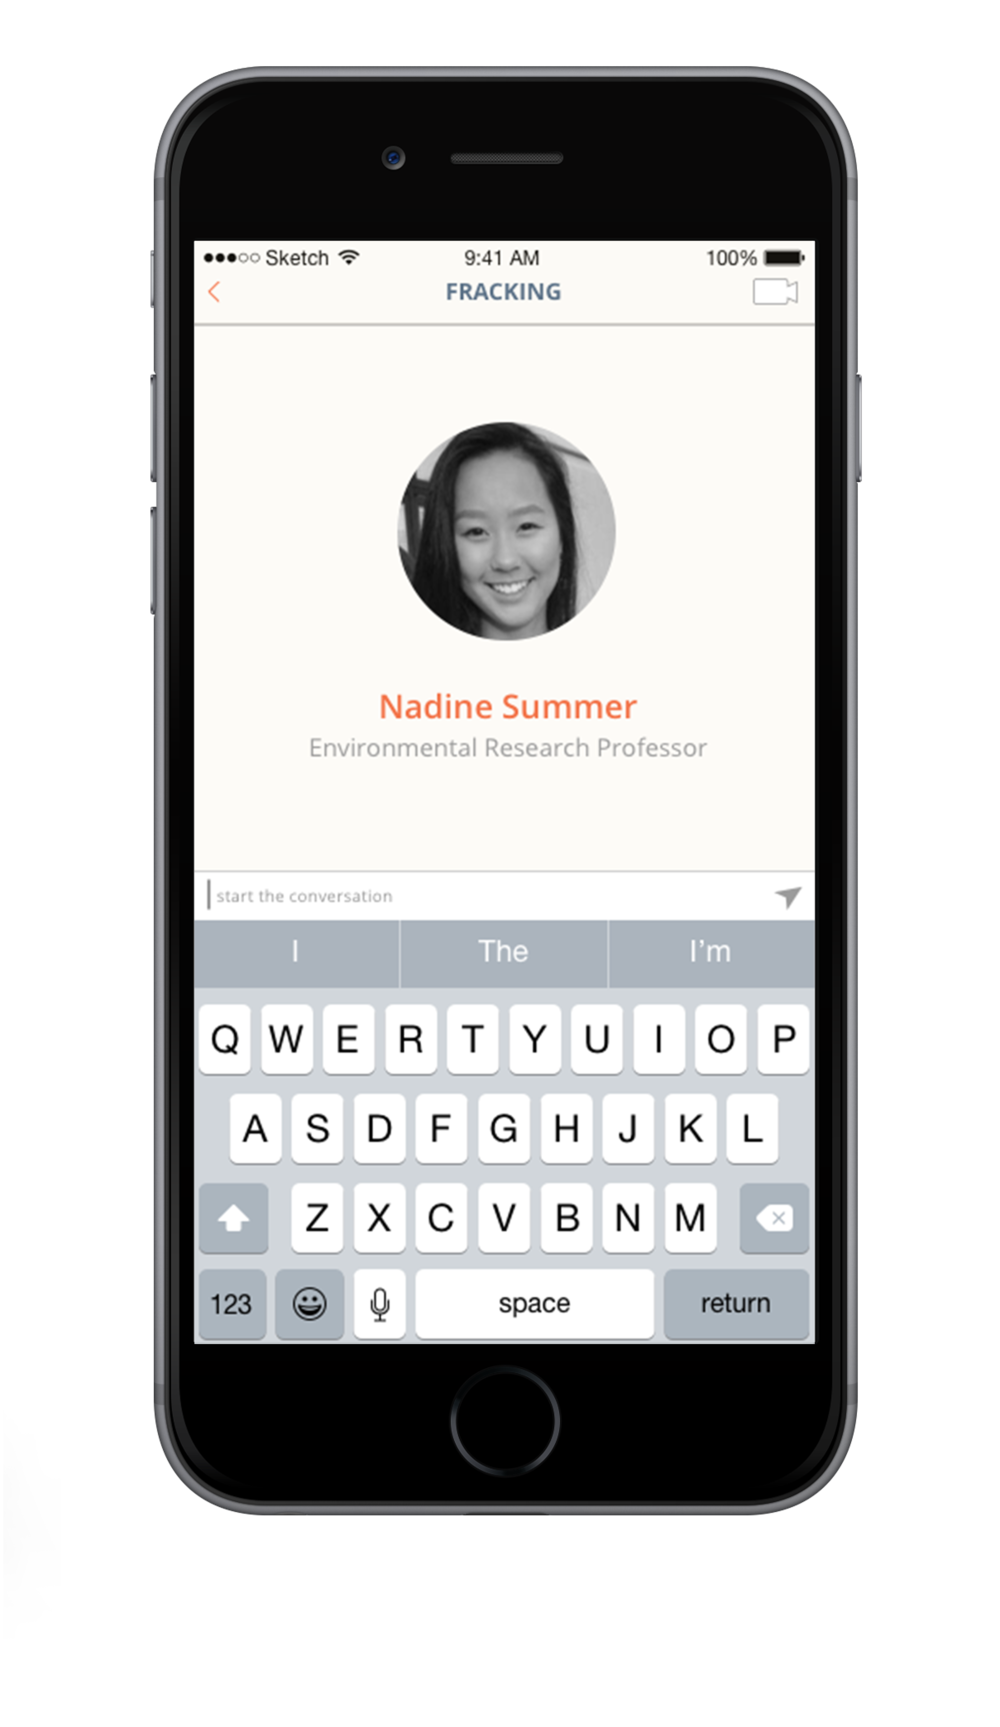 For a more personal conversation users can chat with an expert.